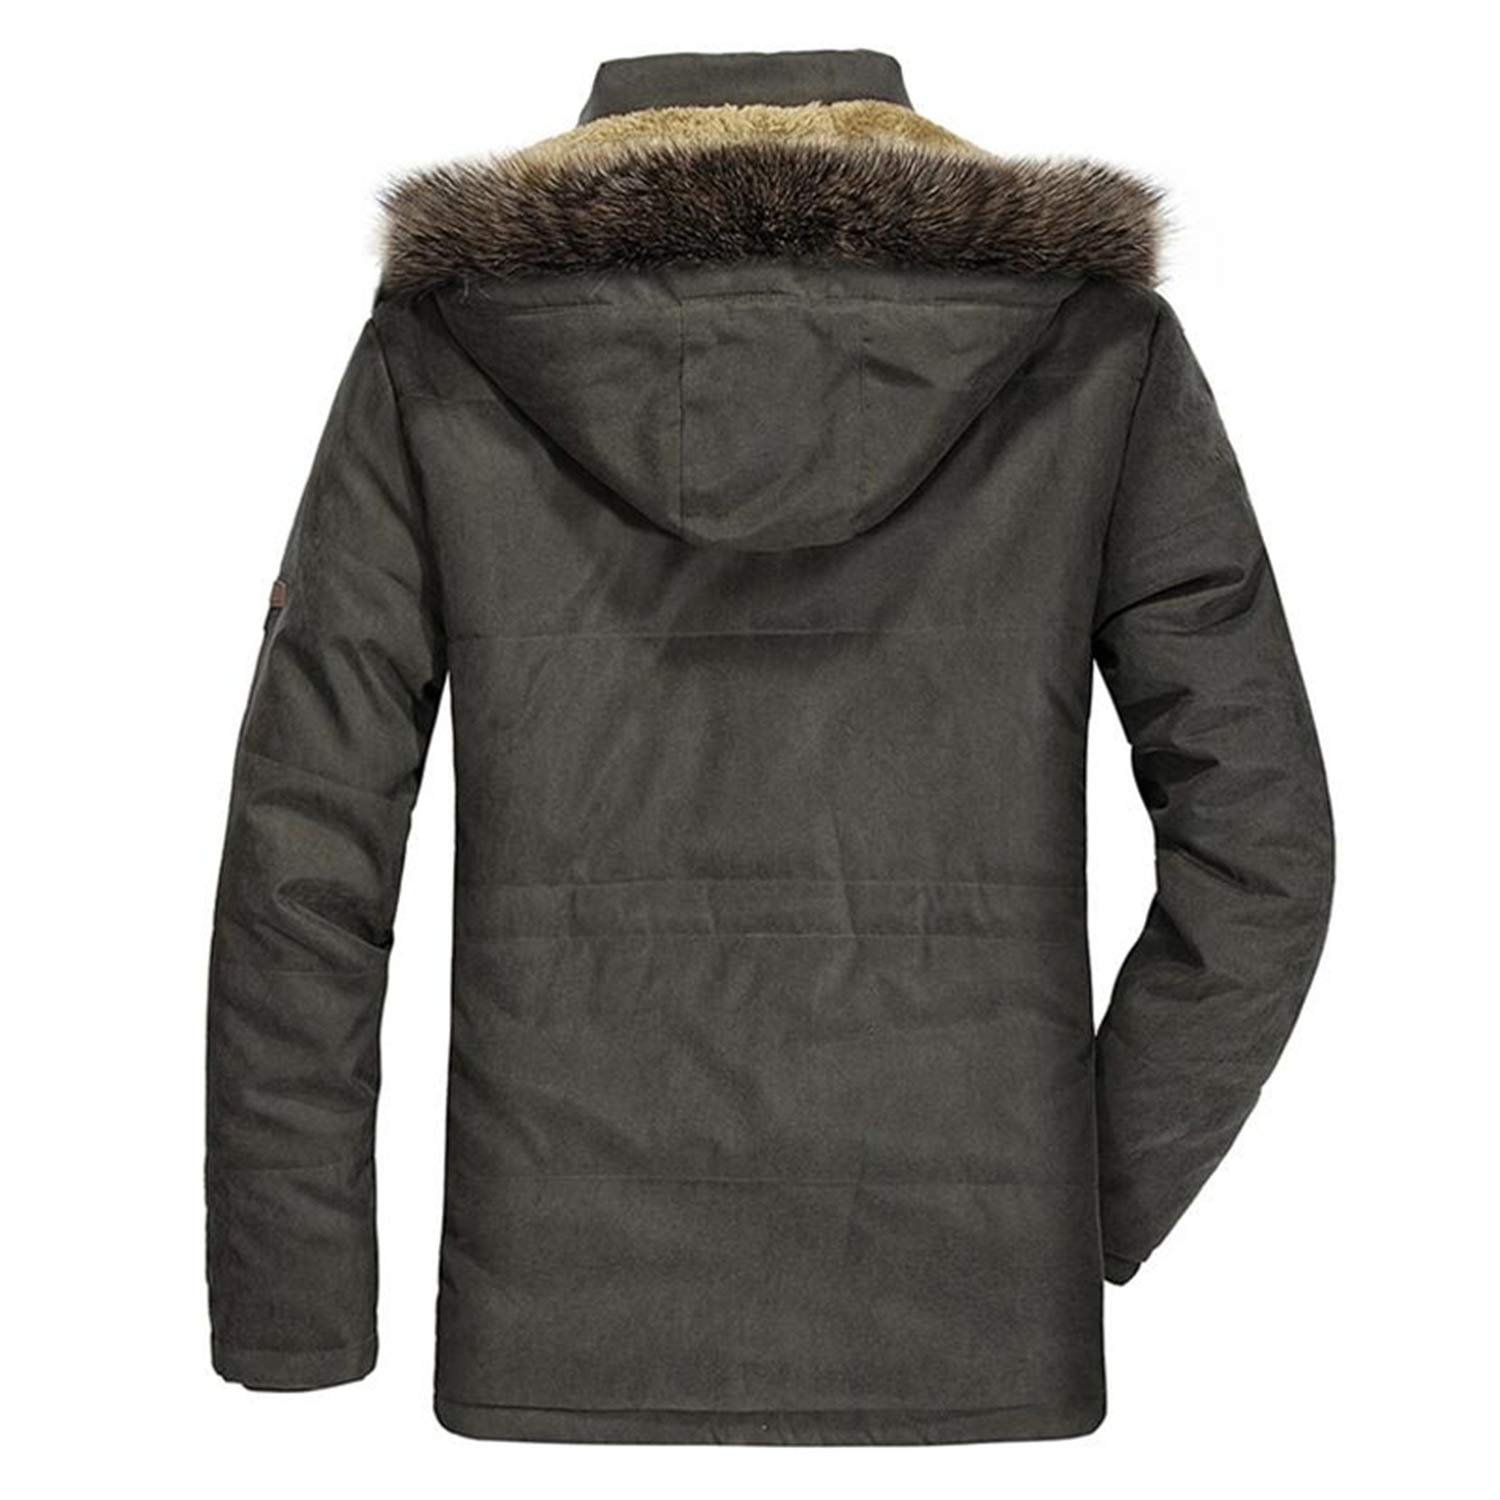 Military Winter Jacket Men Casual Thicken Cotton Padded Parka Long Hooded Coat